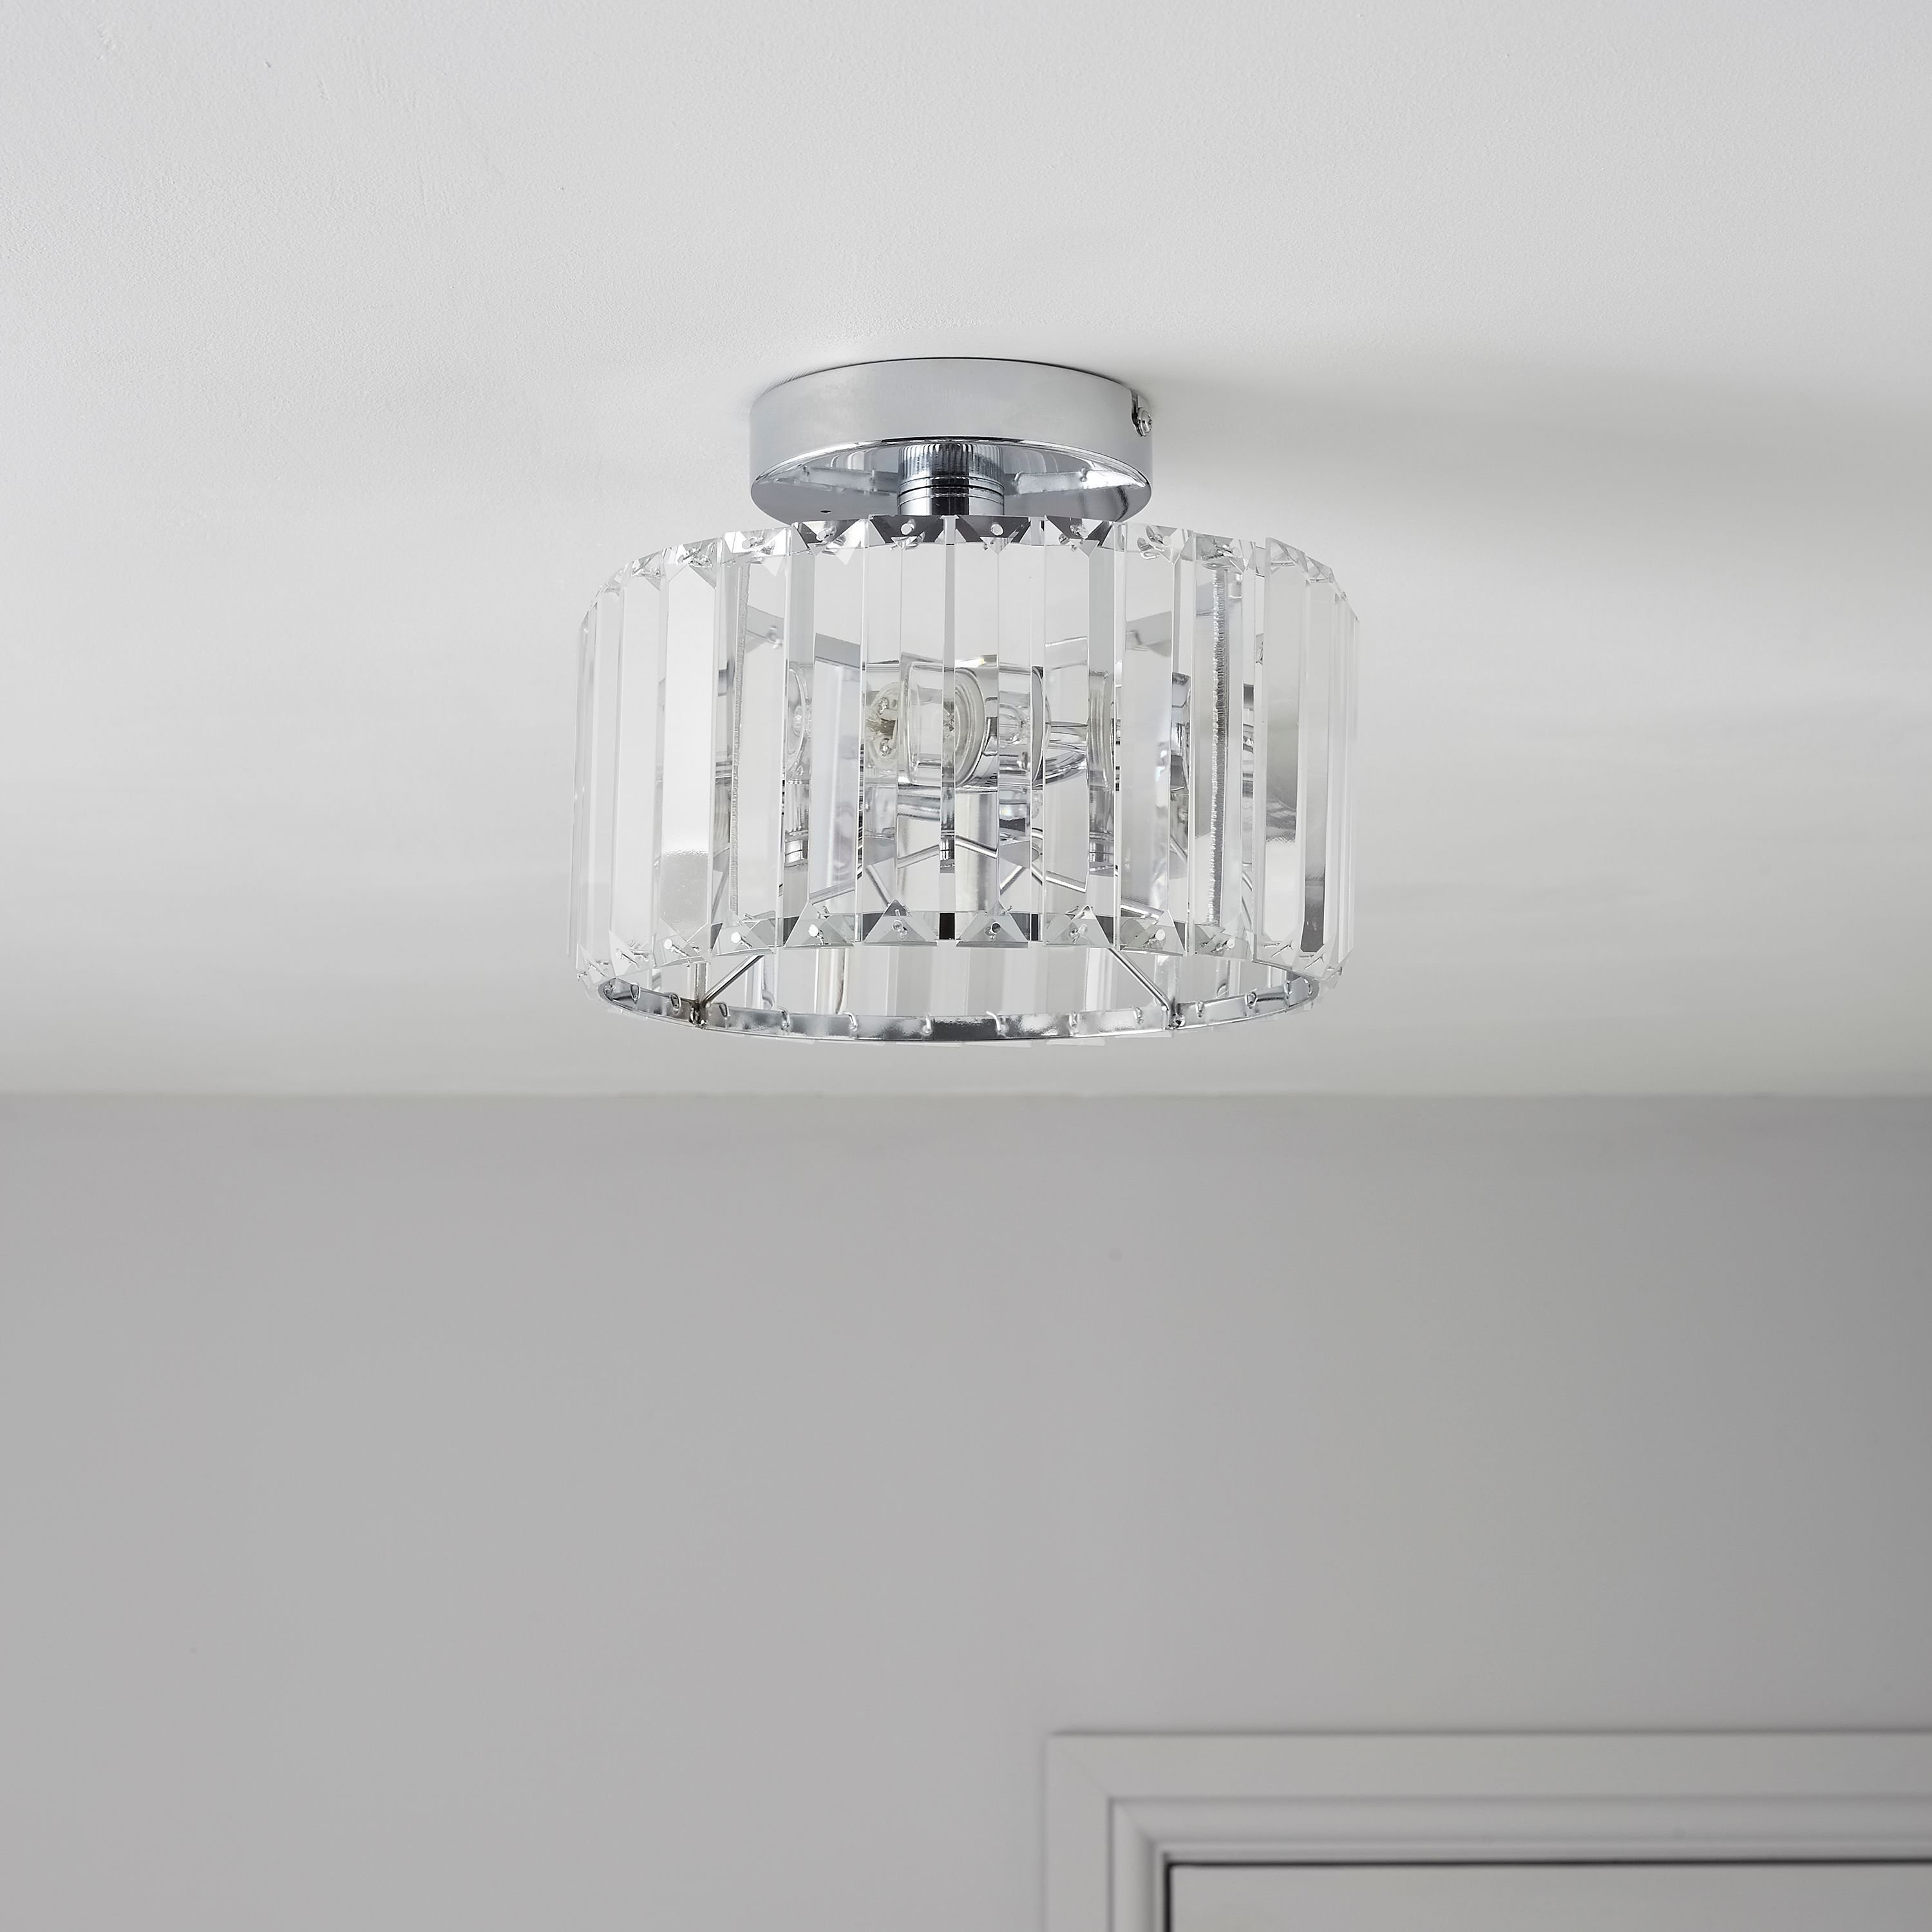 Best Colours Pereti 2 Flush Ceiling Light Departments Diy At B Q House Stuff With Pictures